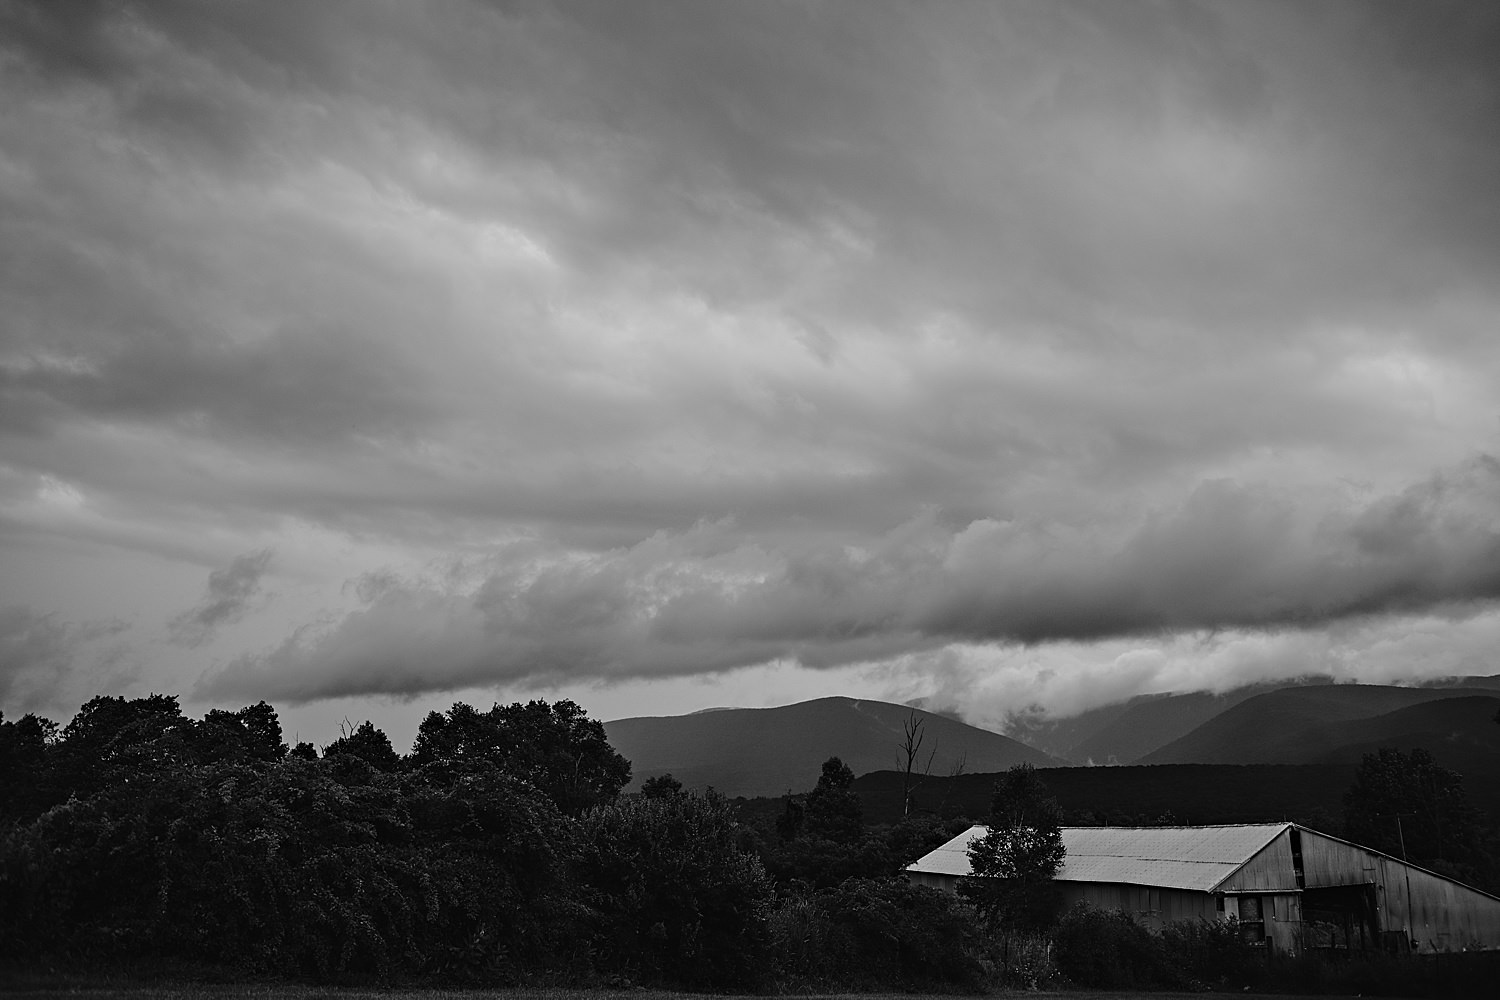 Moody scening image of the storm over Cricket Creek Farm